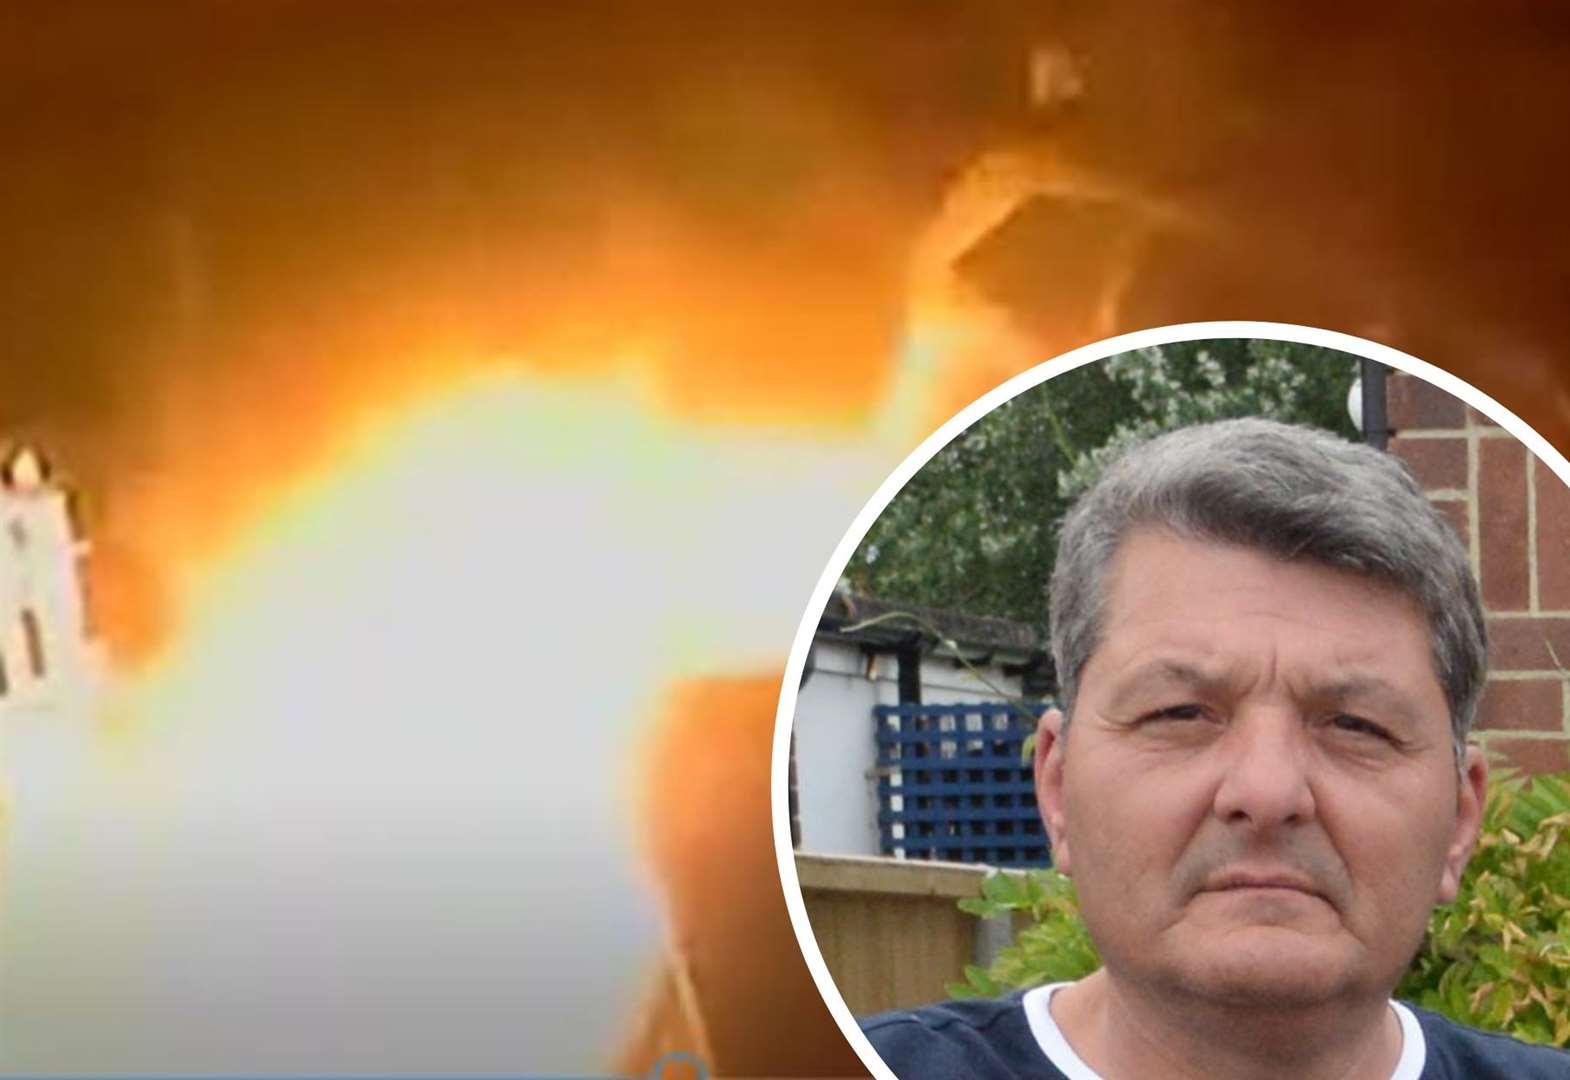 Dad fears 'lunatic' arsonist on loose